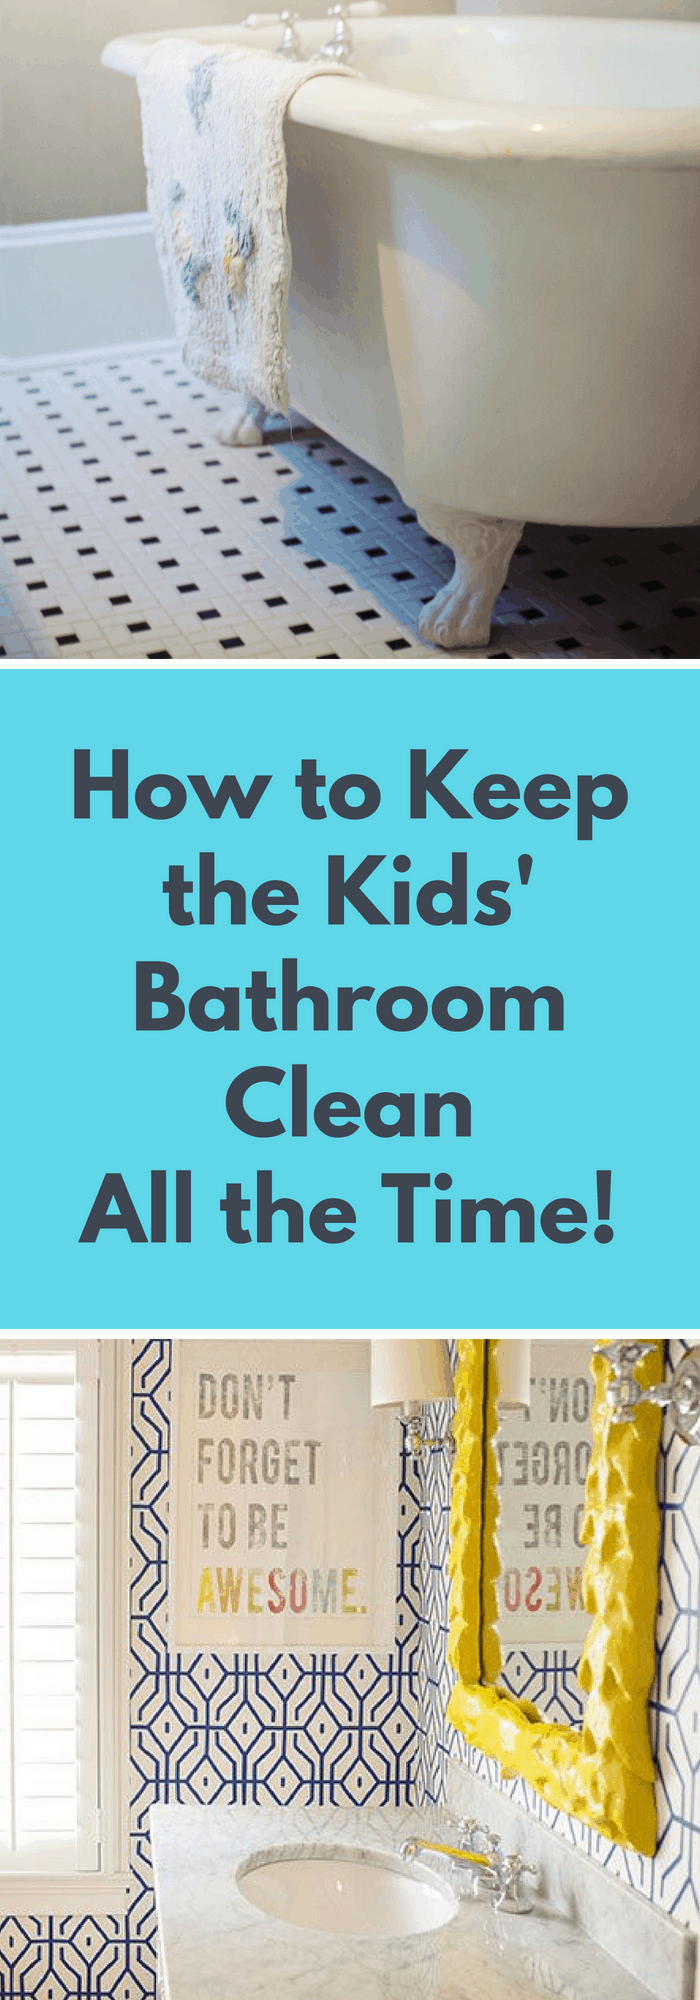 Cleaning--How to Keep the Kids' Bathroom Clean All the Time!--The Organized Mom